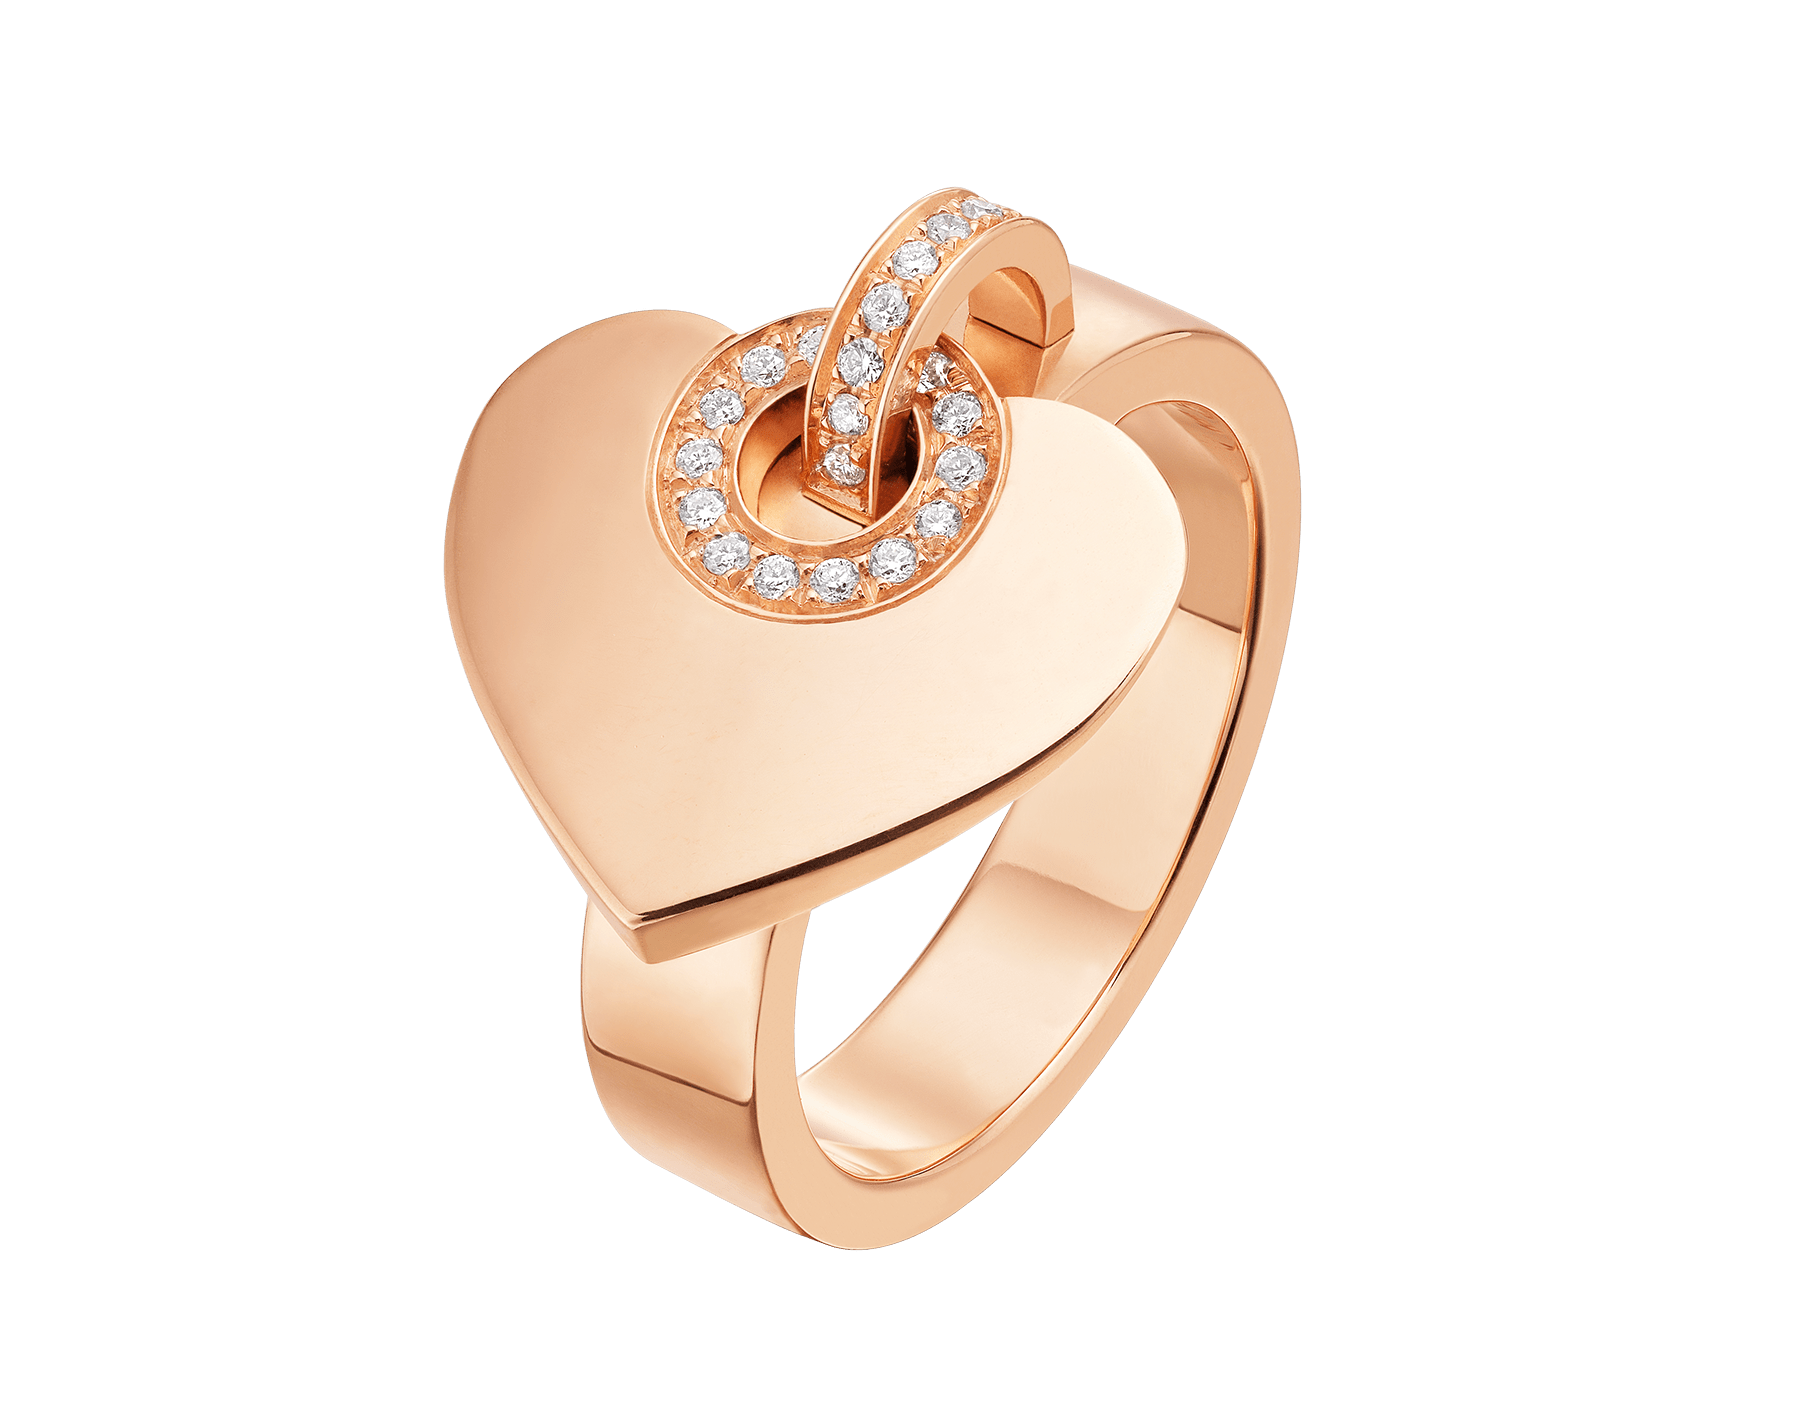 Bague BVLGARI BVLGARI en or rose 18 K pavé diamants AN857219 image 1